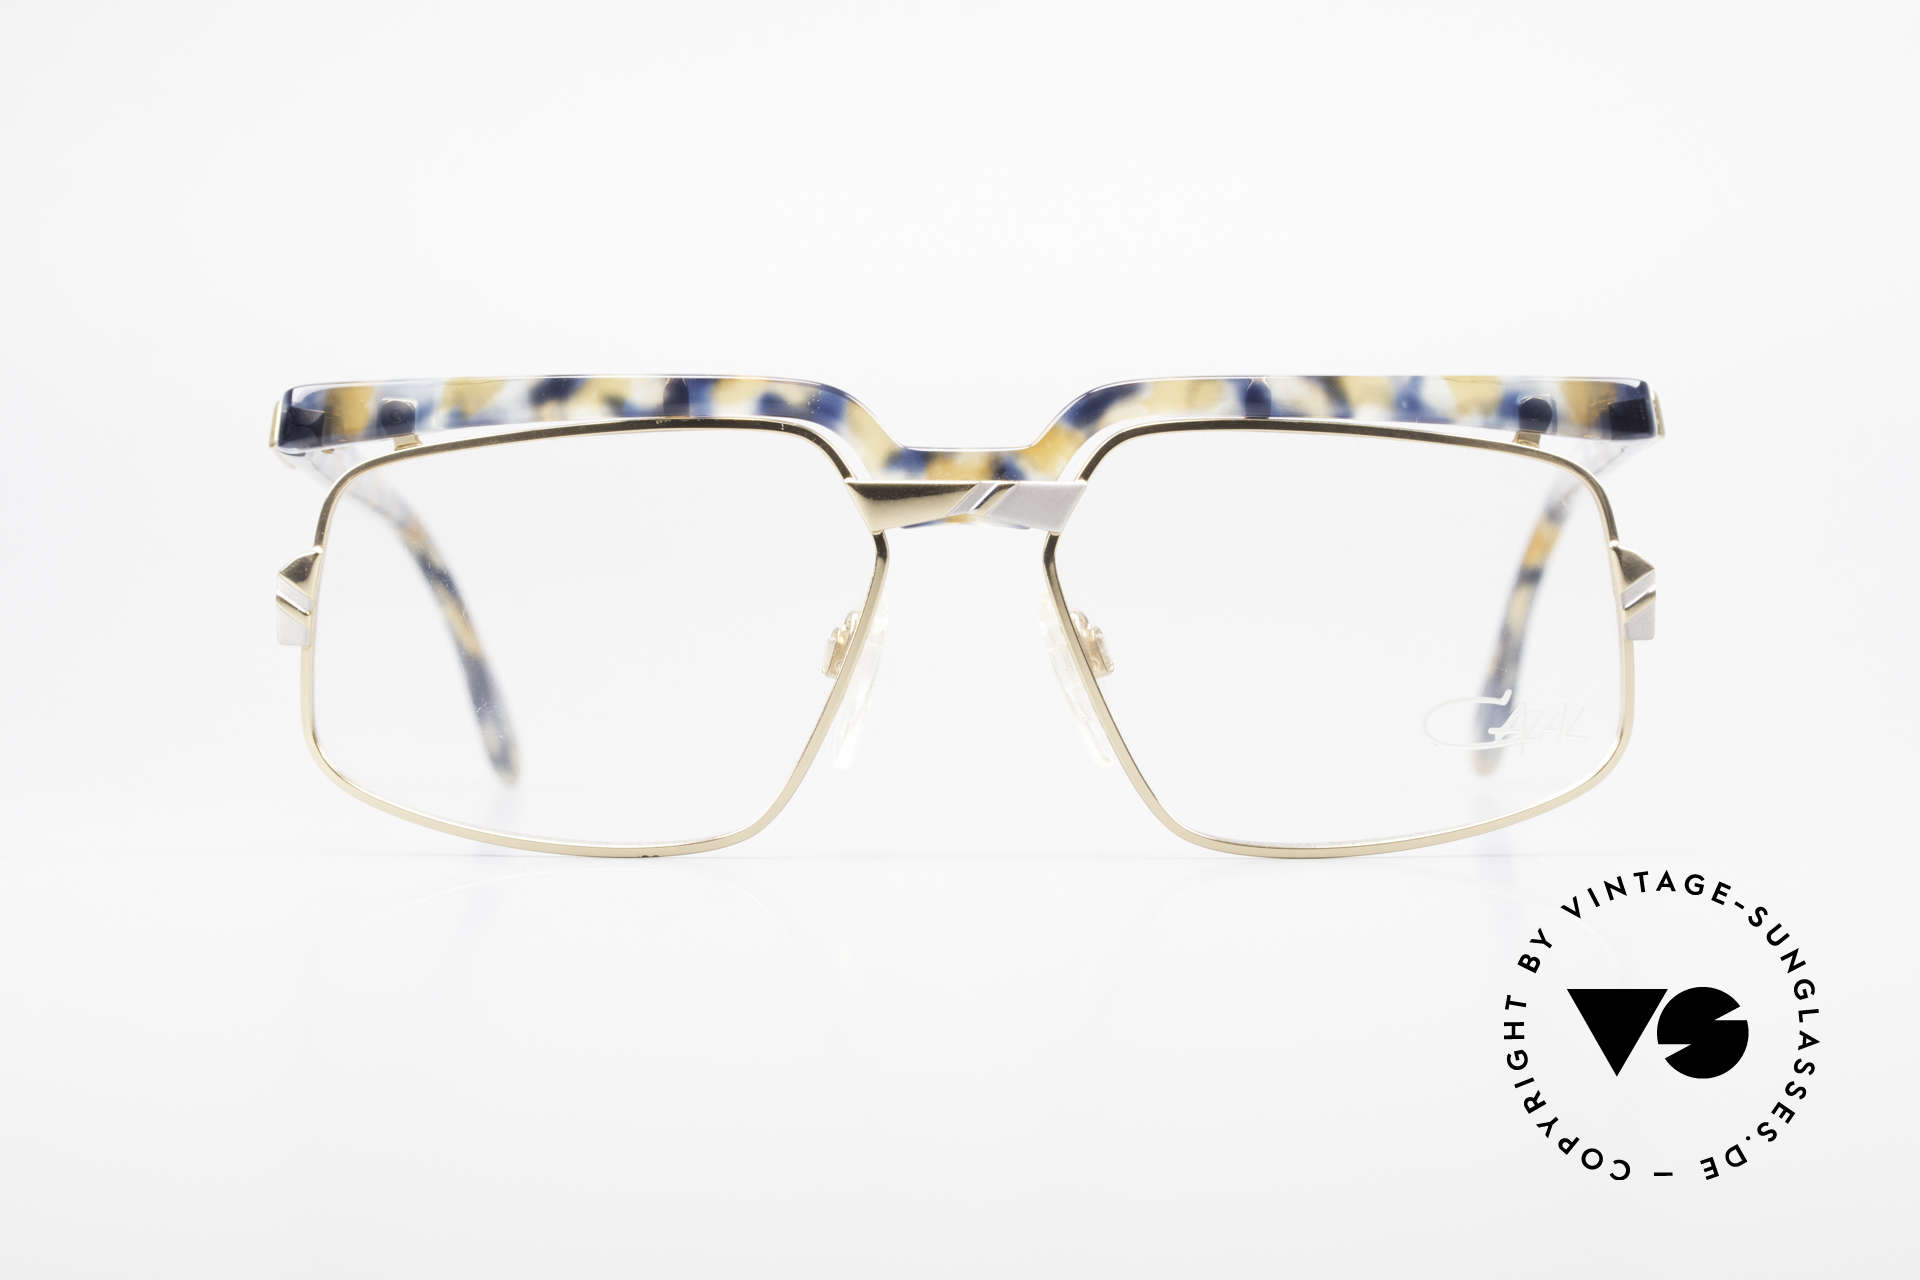 Cazal 246 Extraordinary Vintage Glasses, fancy frame elements with an unique pattern, Made for Men and Women